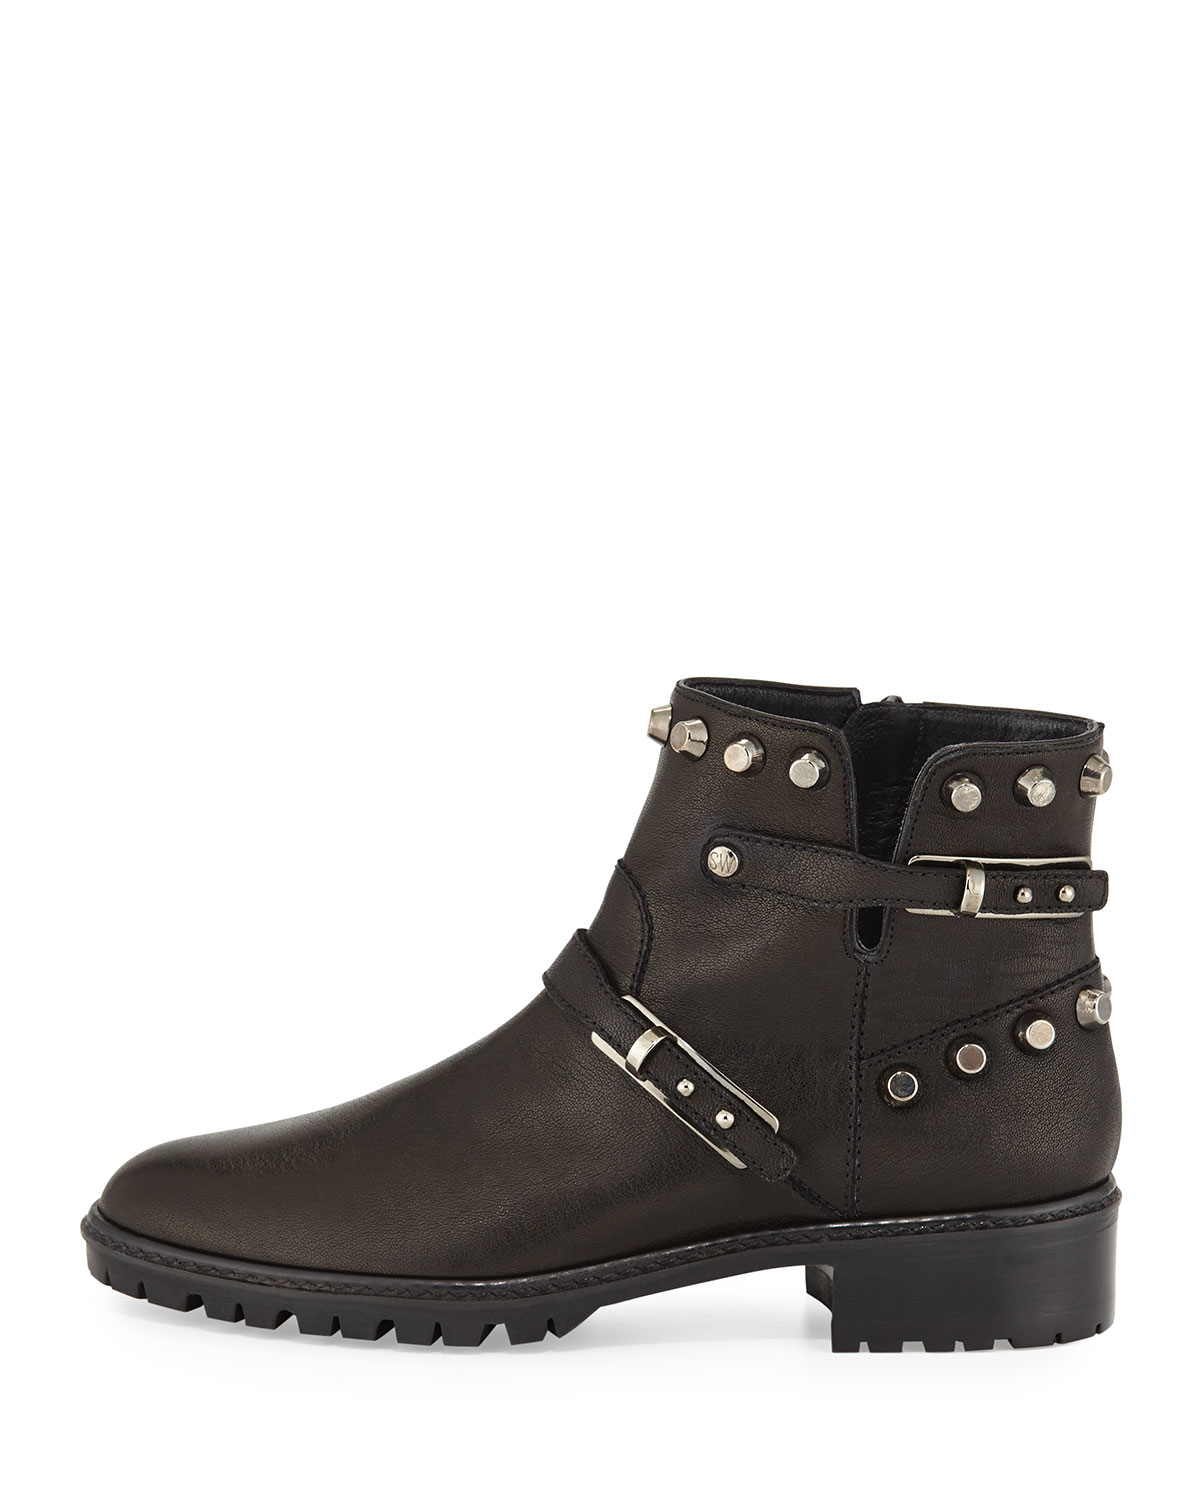 stuart weitzman go west studded leather ankle boots in